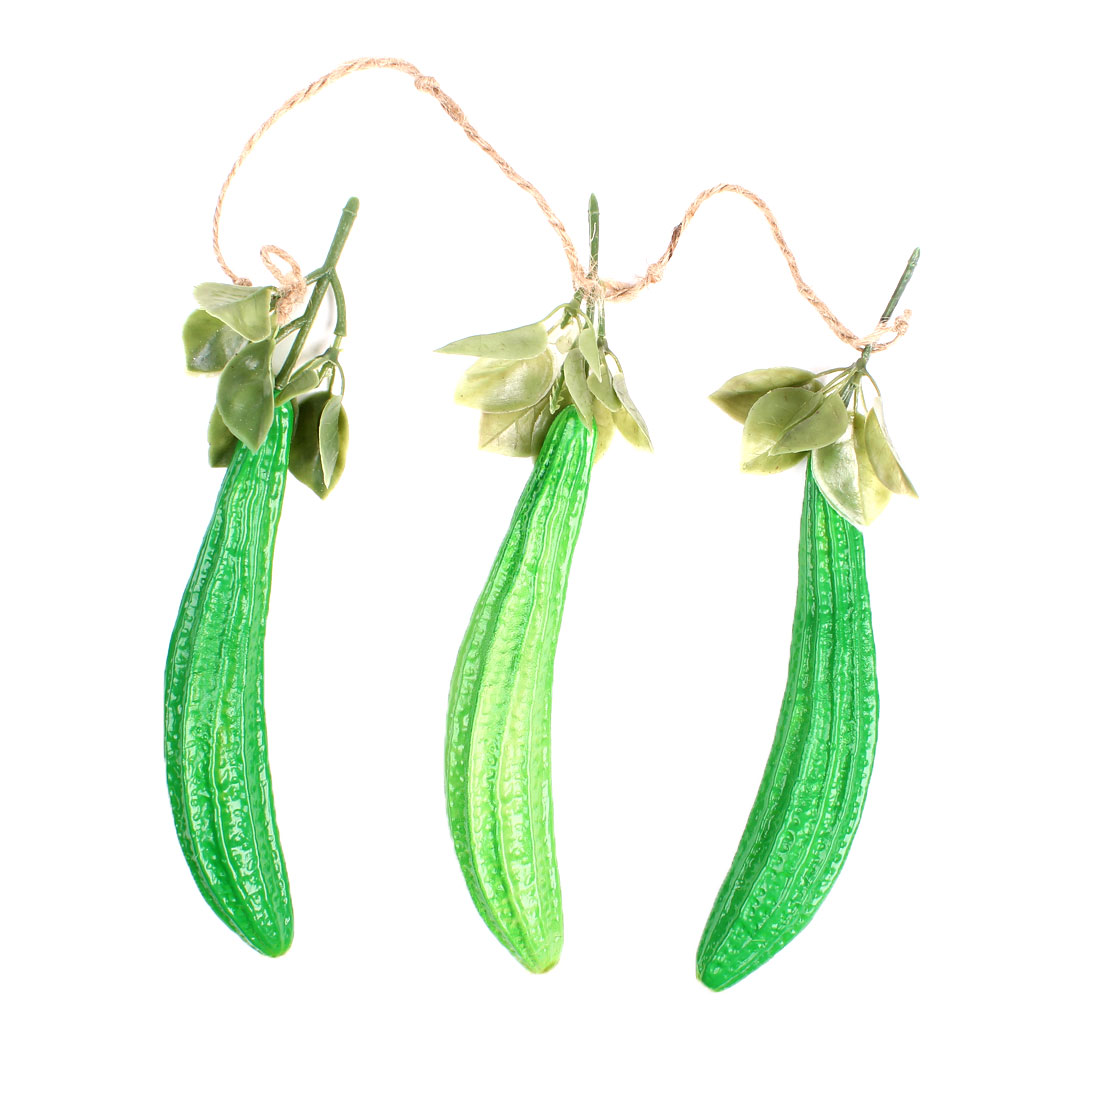 Home Restaurant Emulational Green Plastic Cucumber Hanging Decoration